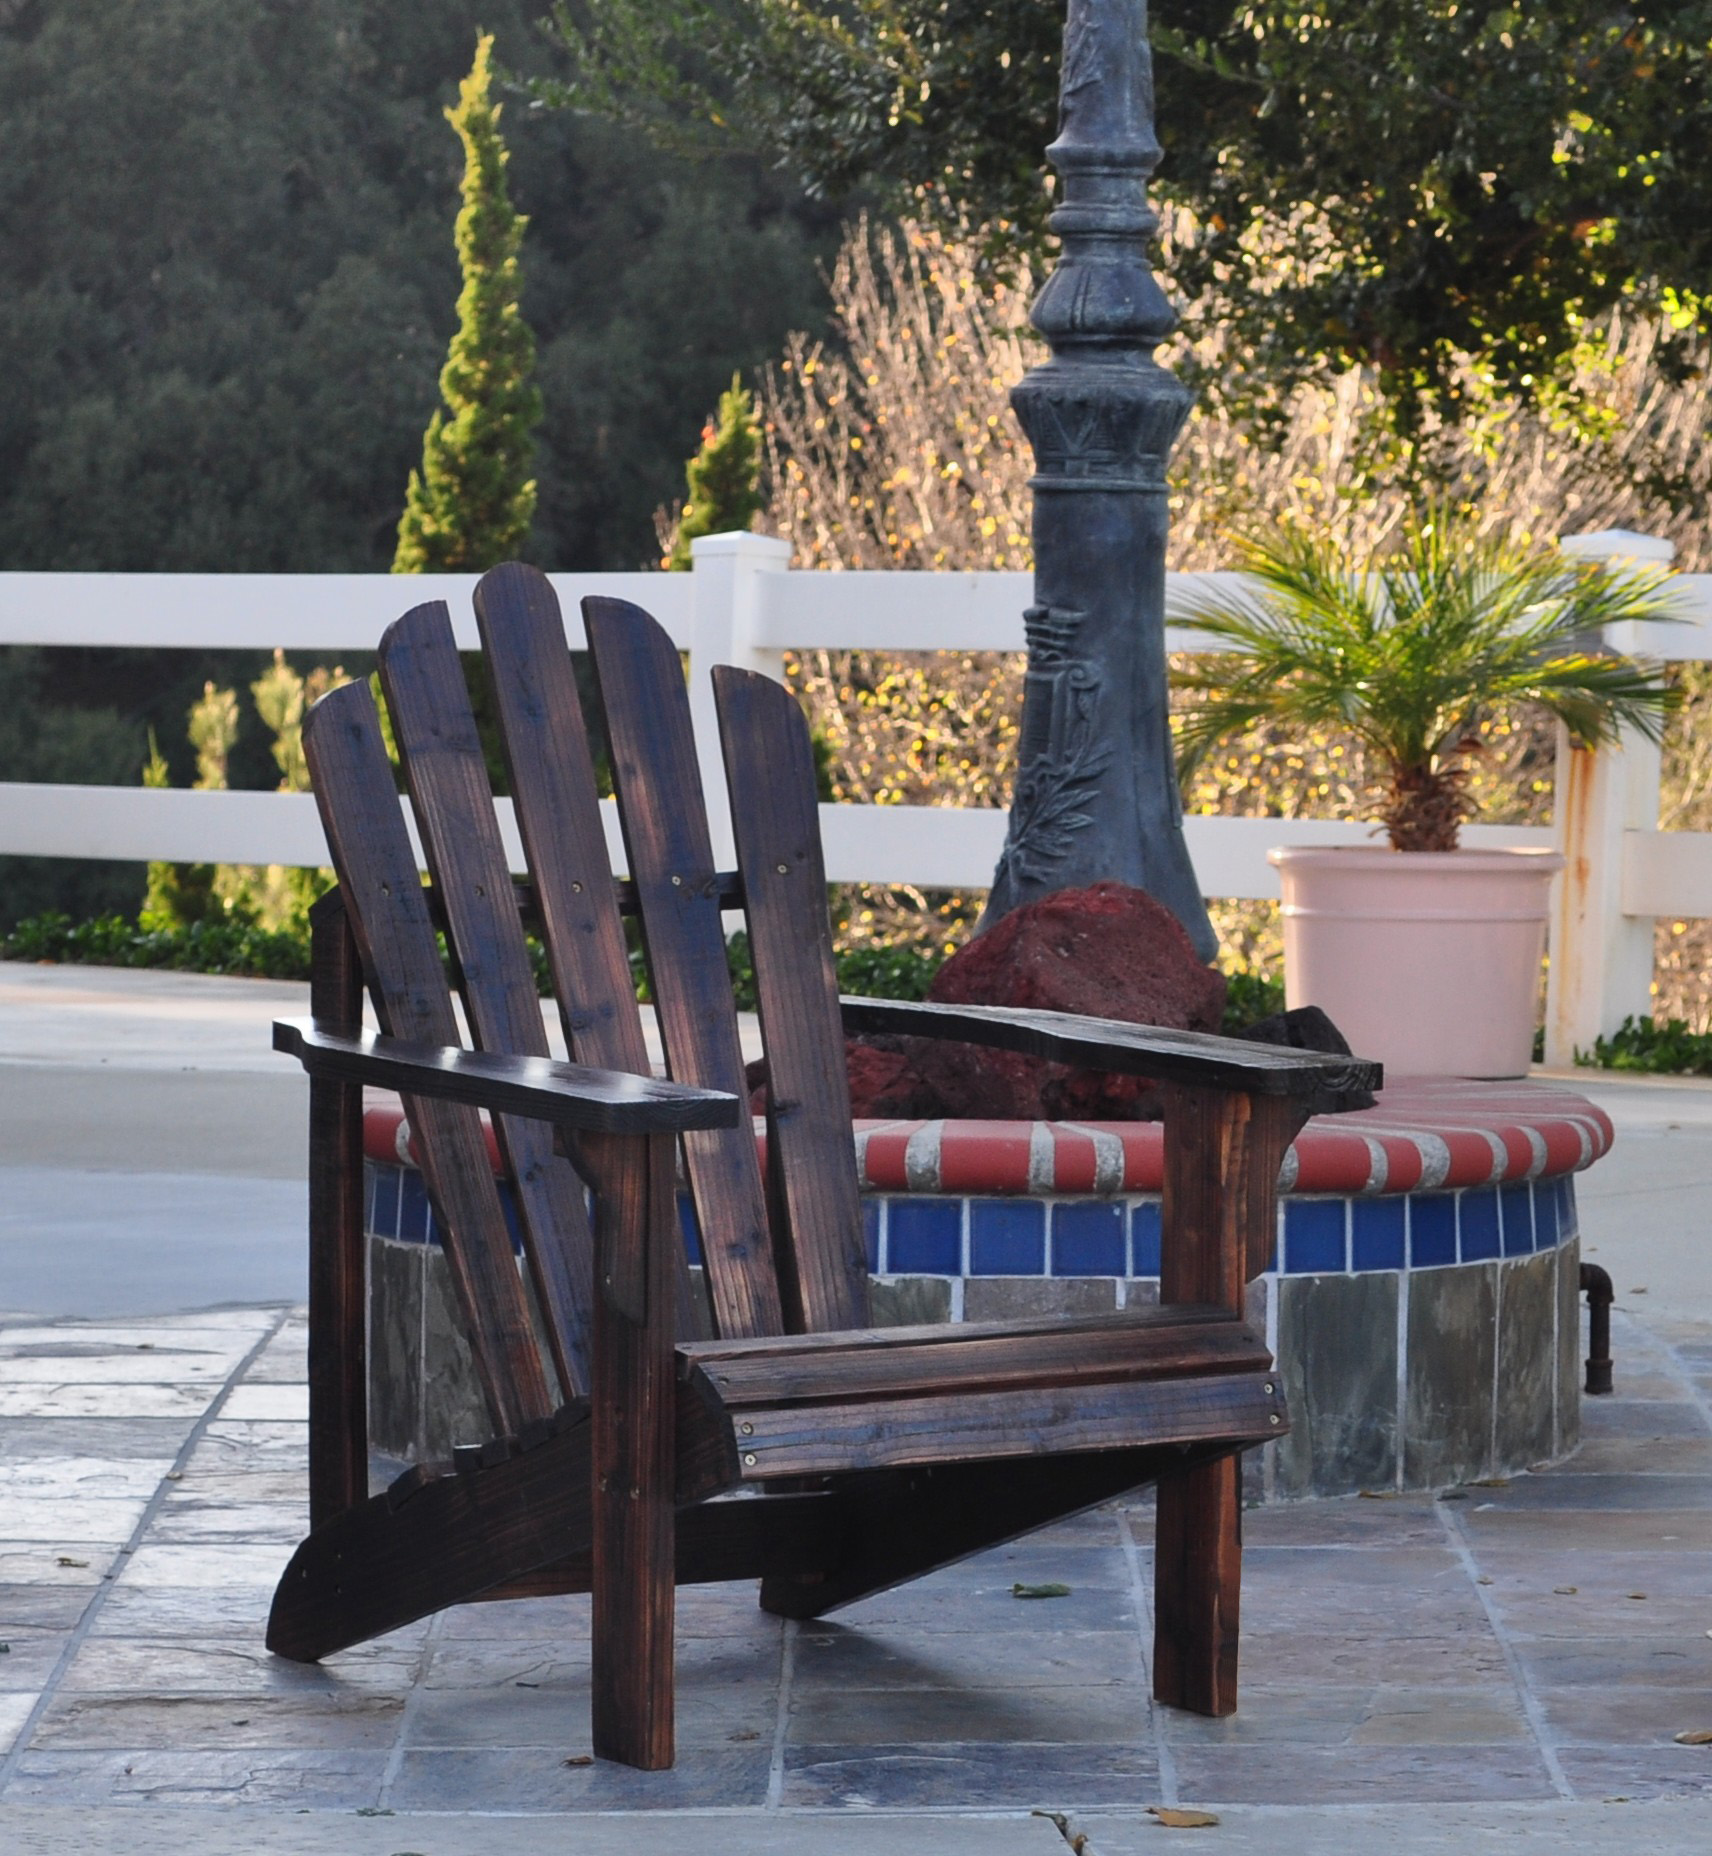 Shine Co 4611BB 28.25 x 35 x 36 Inch Westport Adirondack Chair - Standard - Burnt Brown